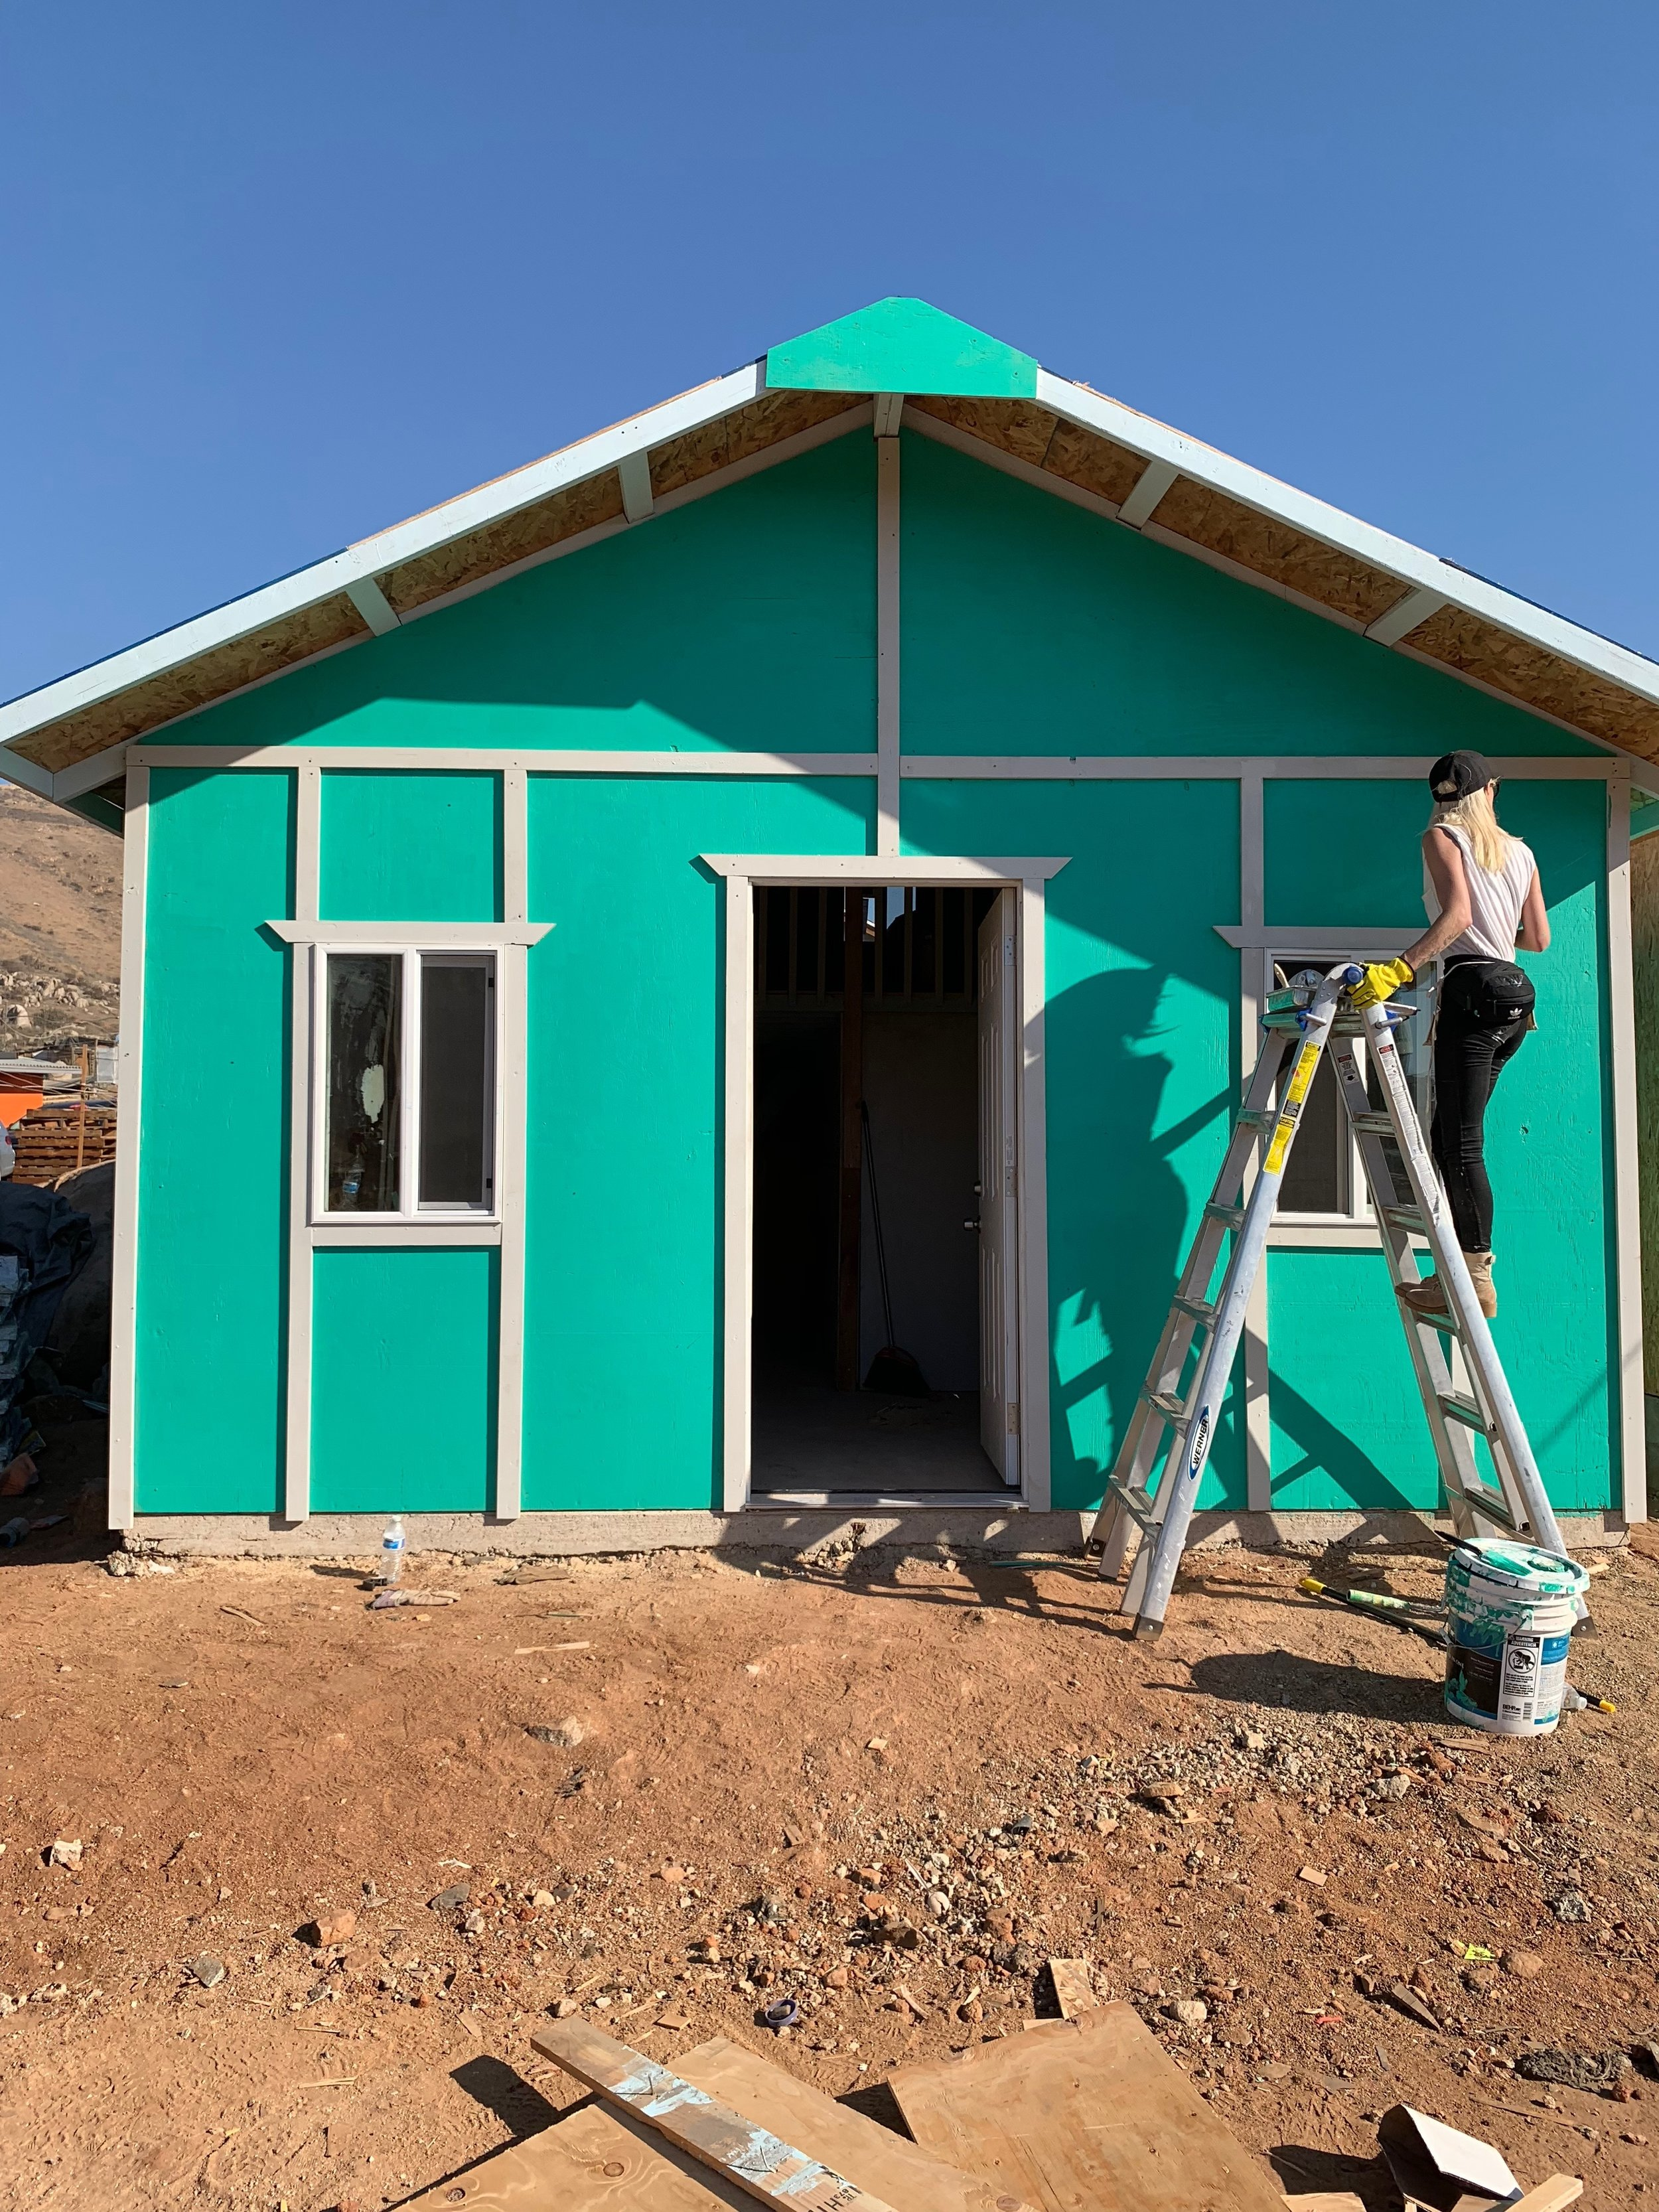 I painted this whole house by myself and the families were able to choose the color of their new home!